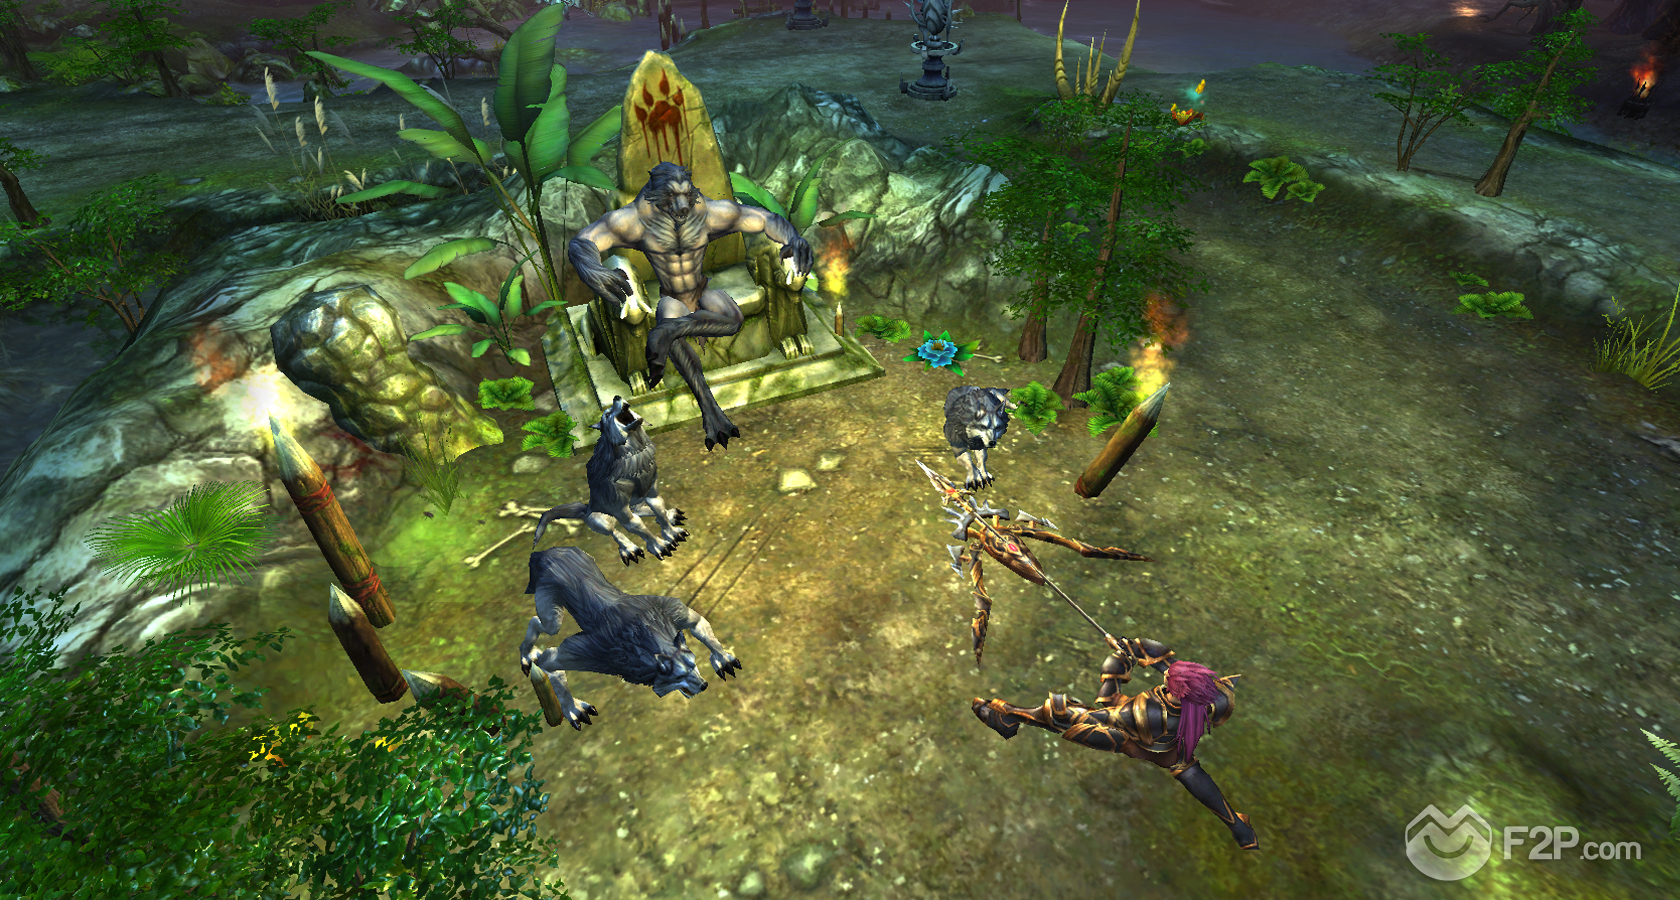 Click image for larger version.Name:Realm of the Titans 5.jpgViews:328Size:1.53 MBID:3352